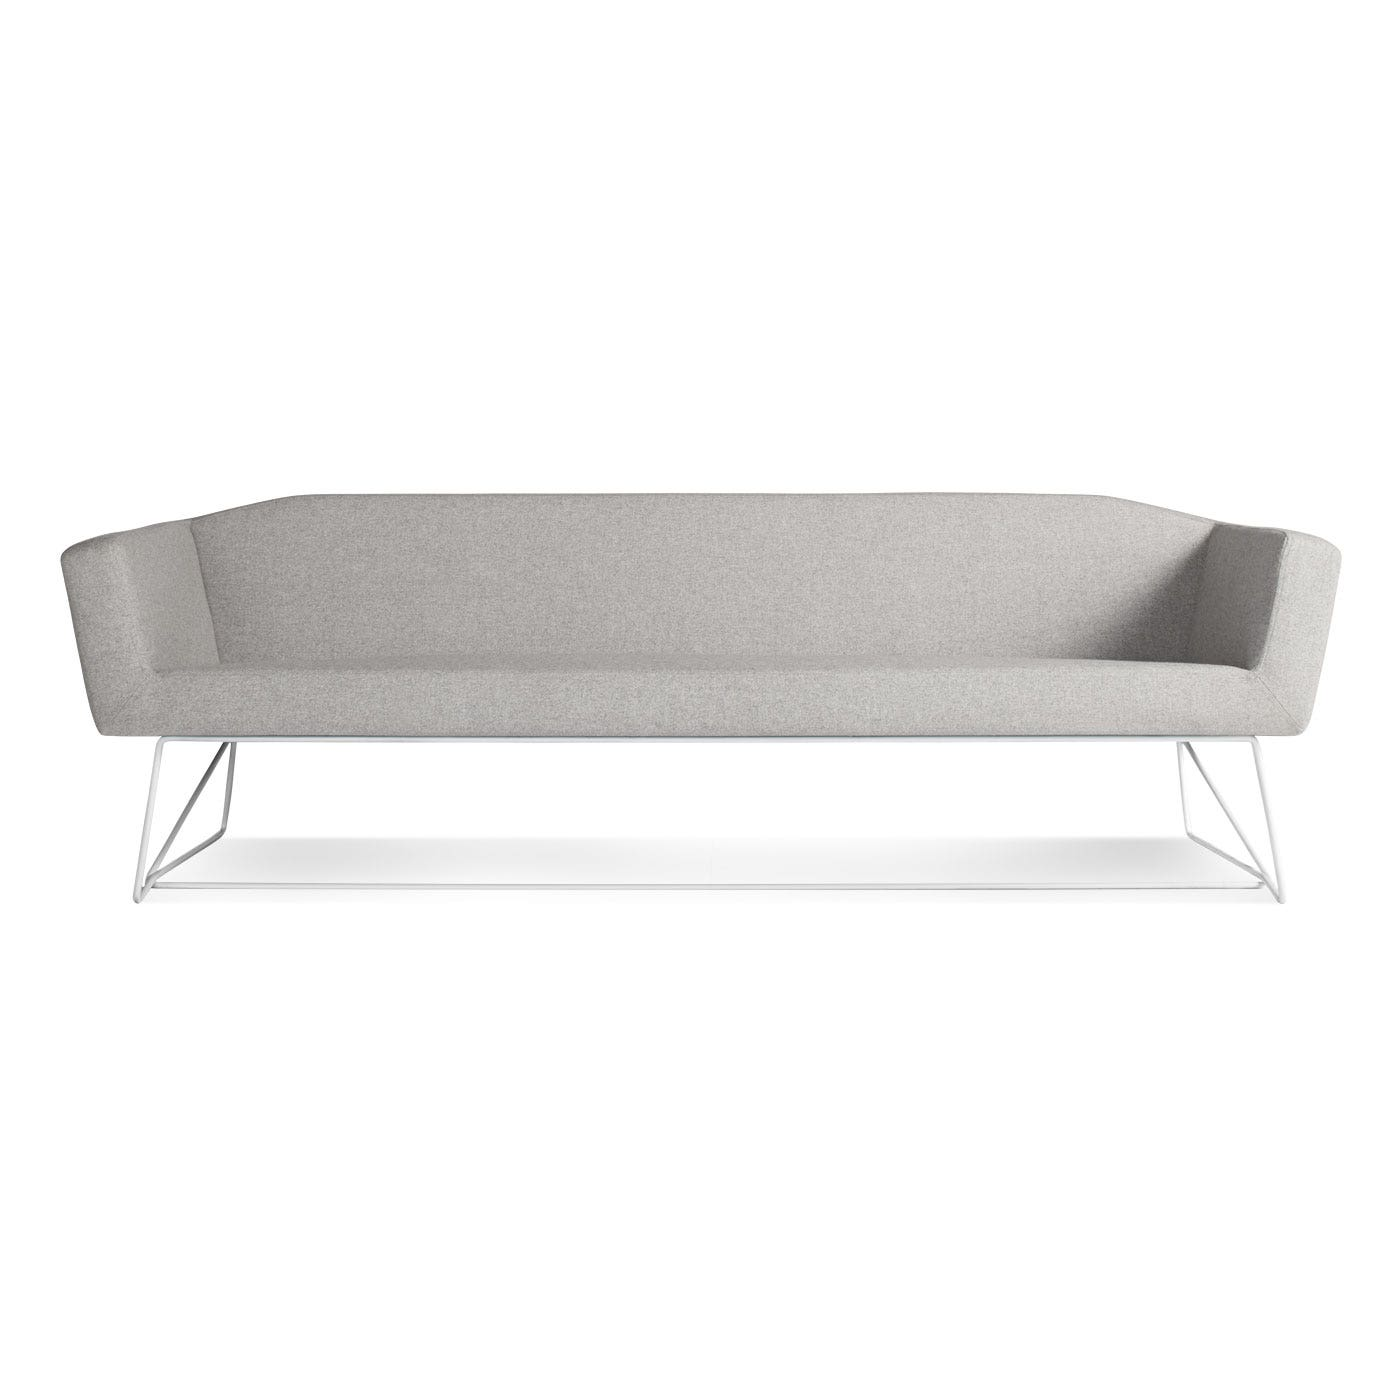 Previous Image Swept Sofa   Thurmond Light Grey ...